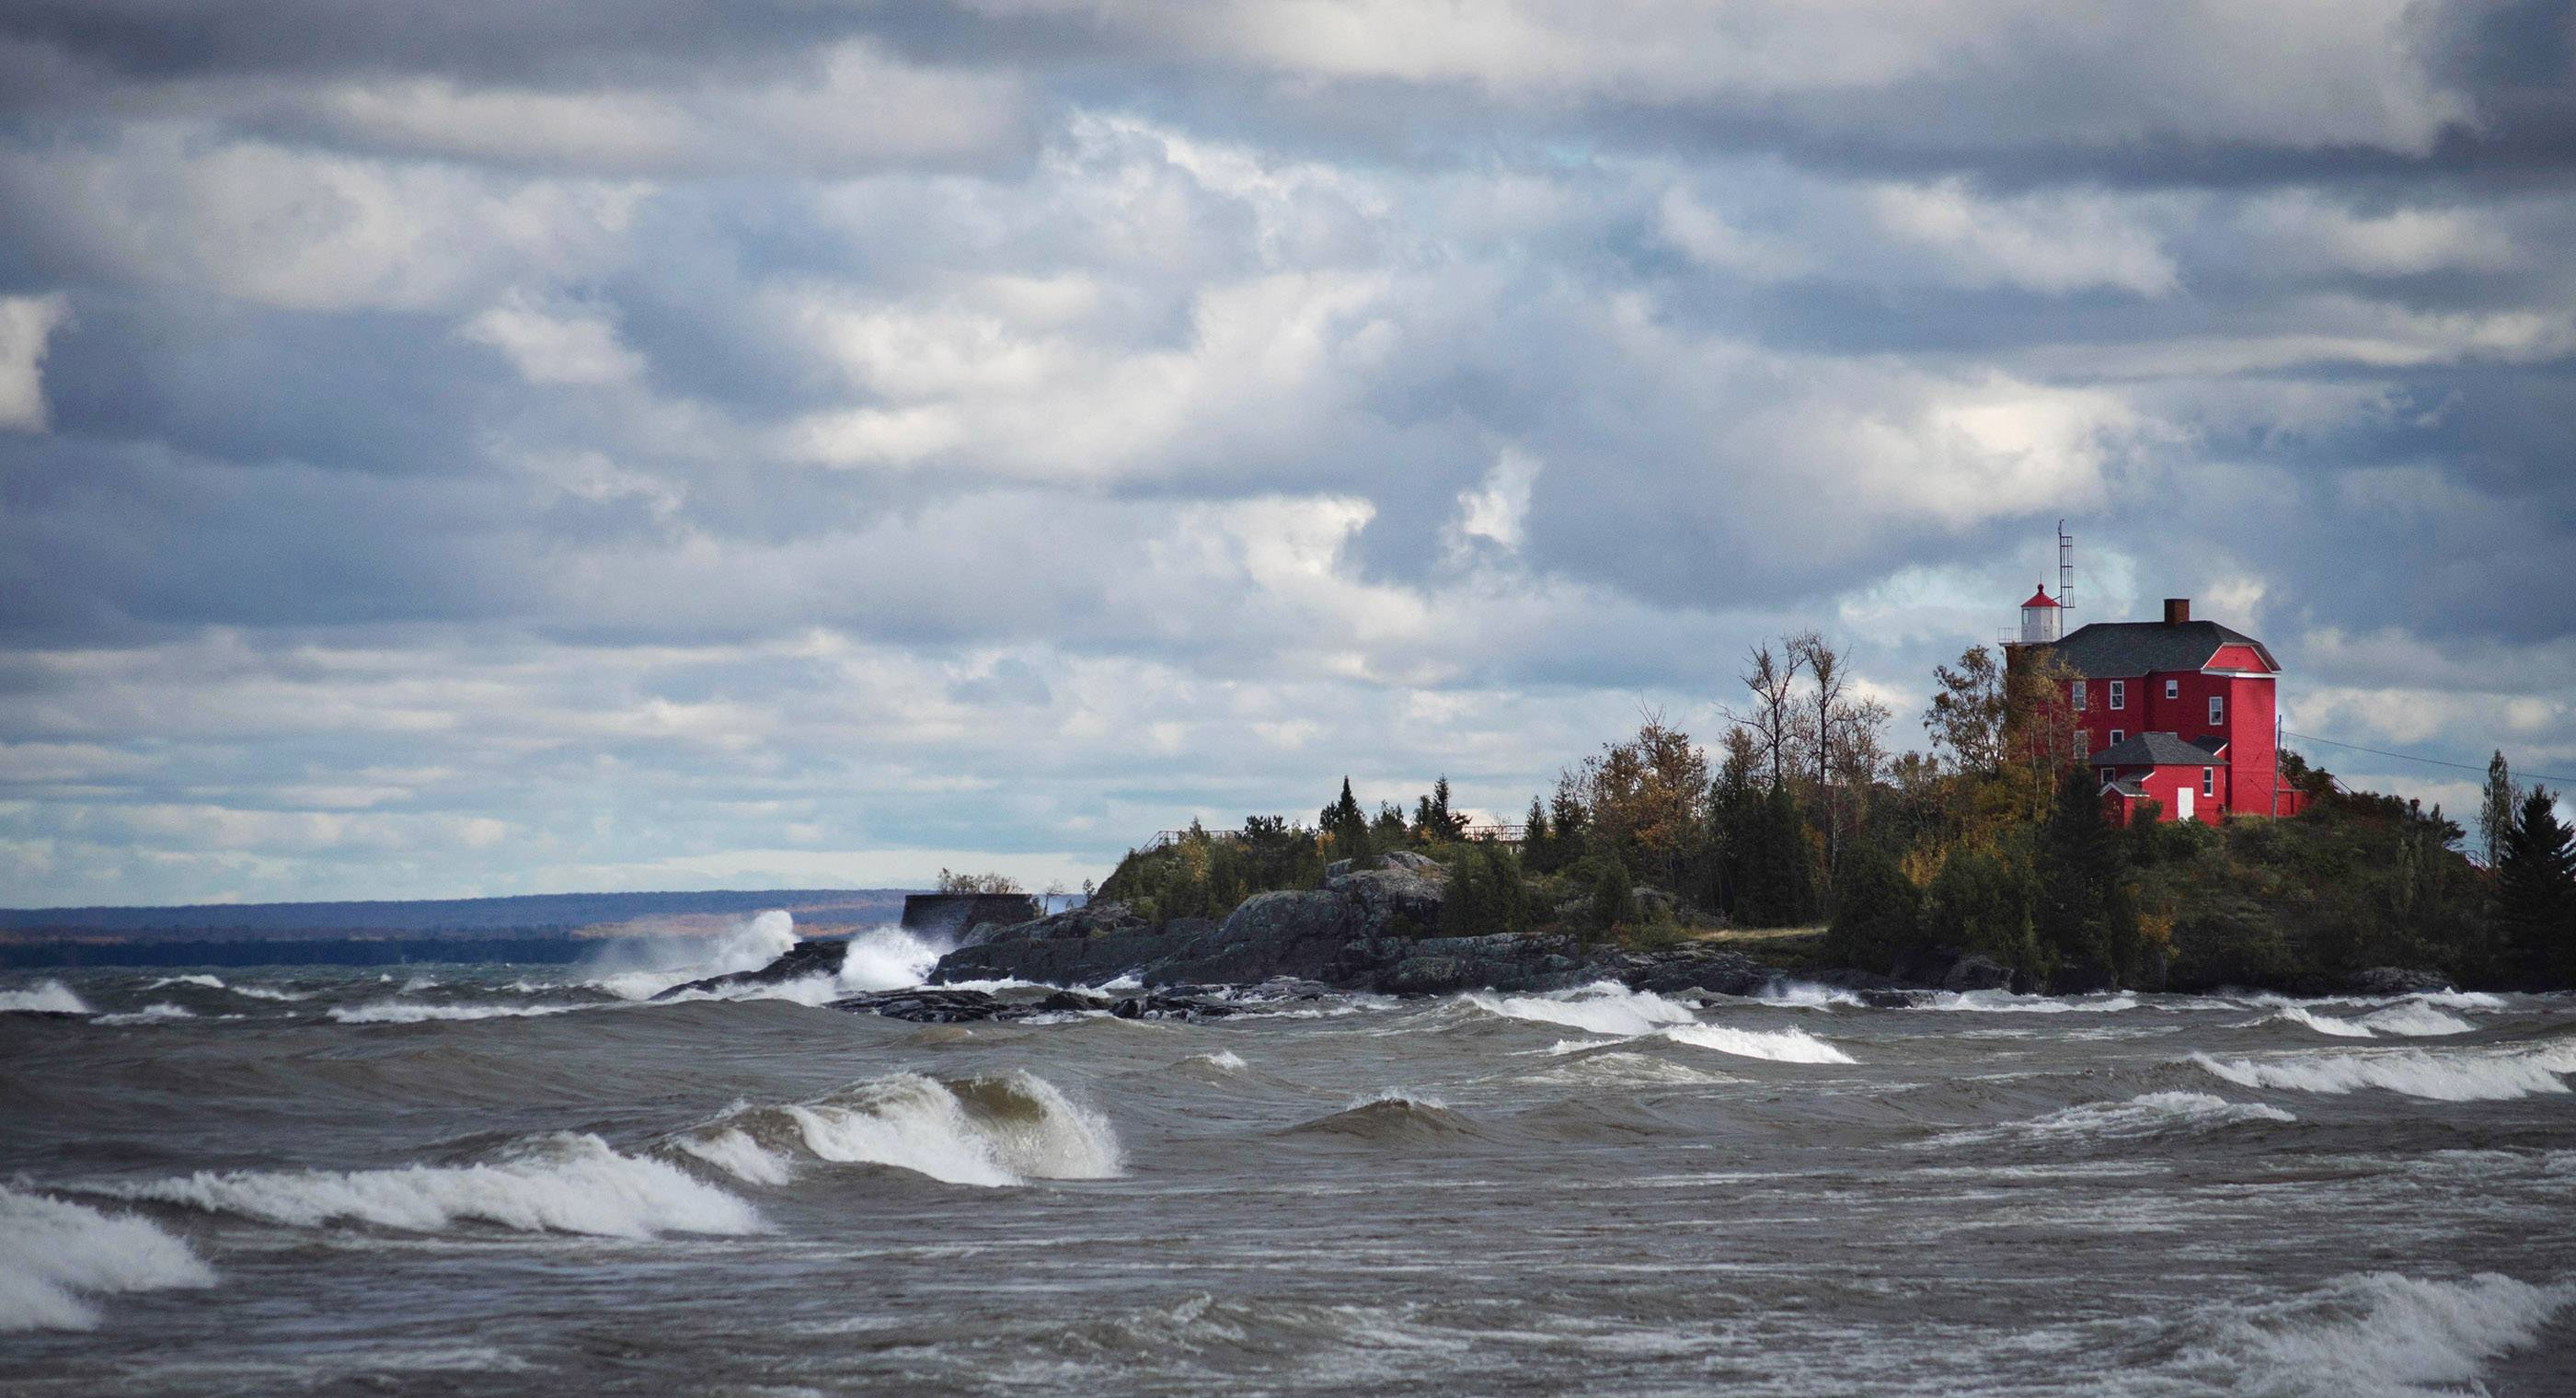 Waves crash near a beautiful red house along the beach of Lake Superior.